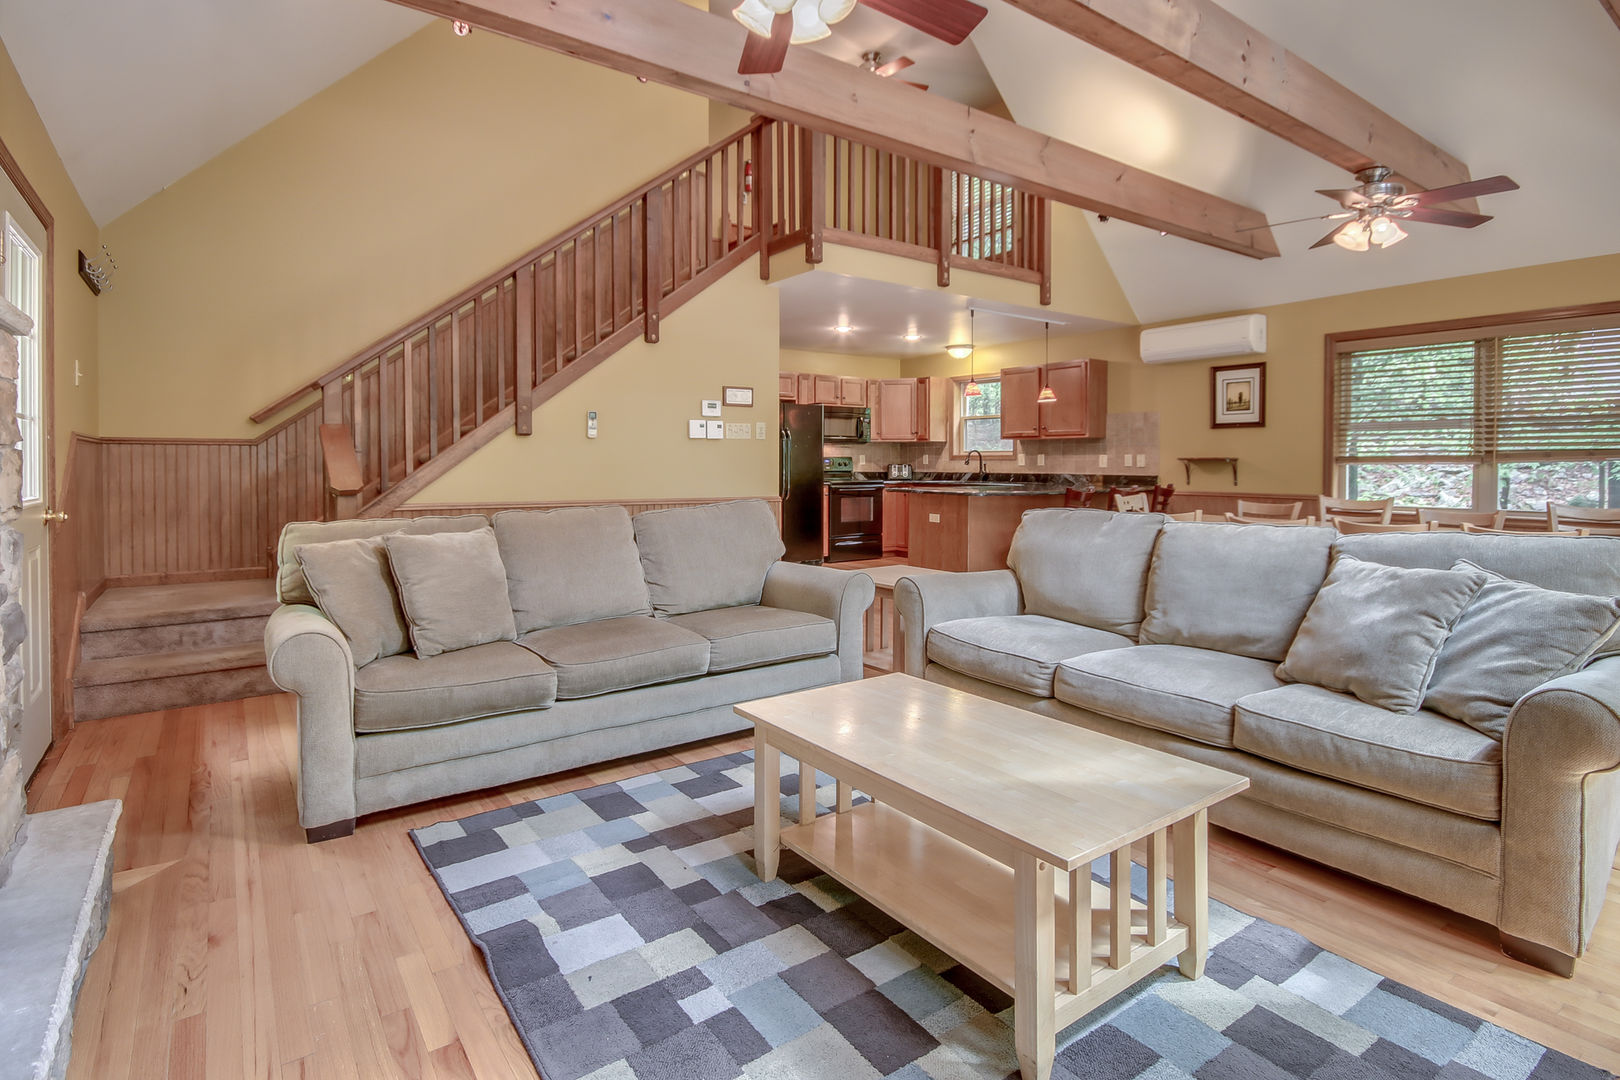 Two Large Sofas and Coffee Table Near Stairs.